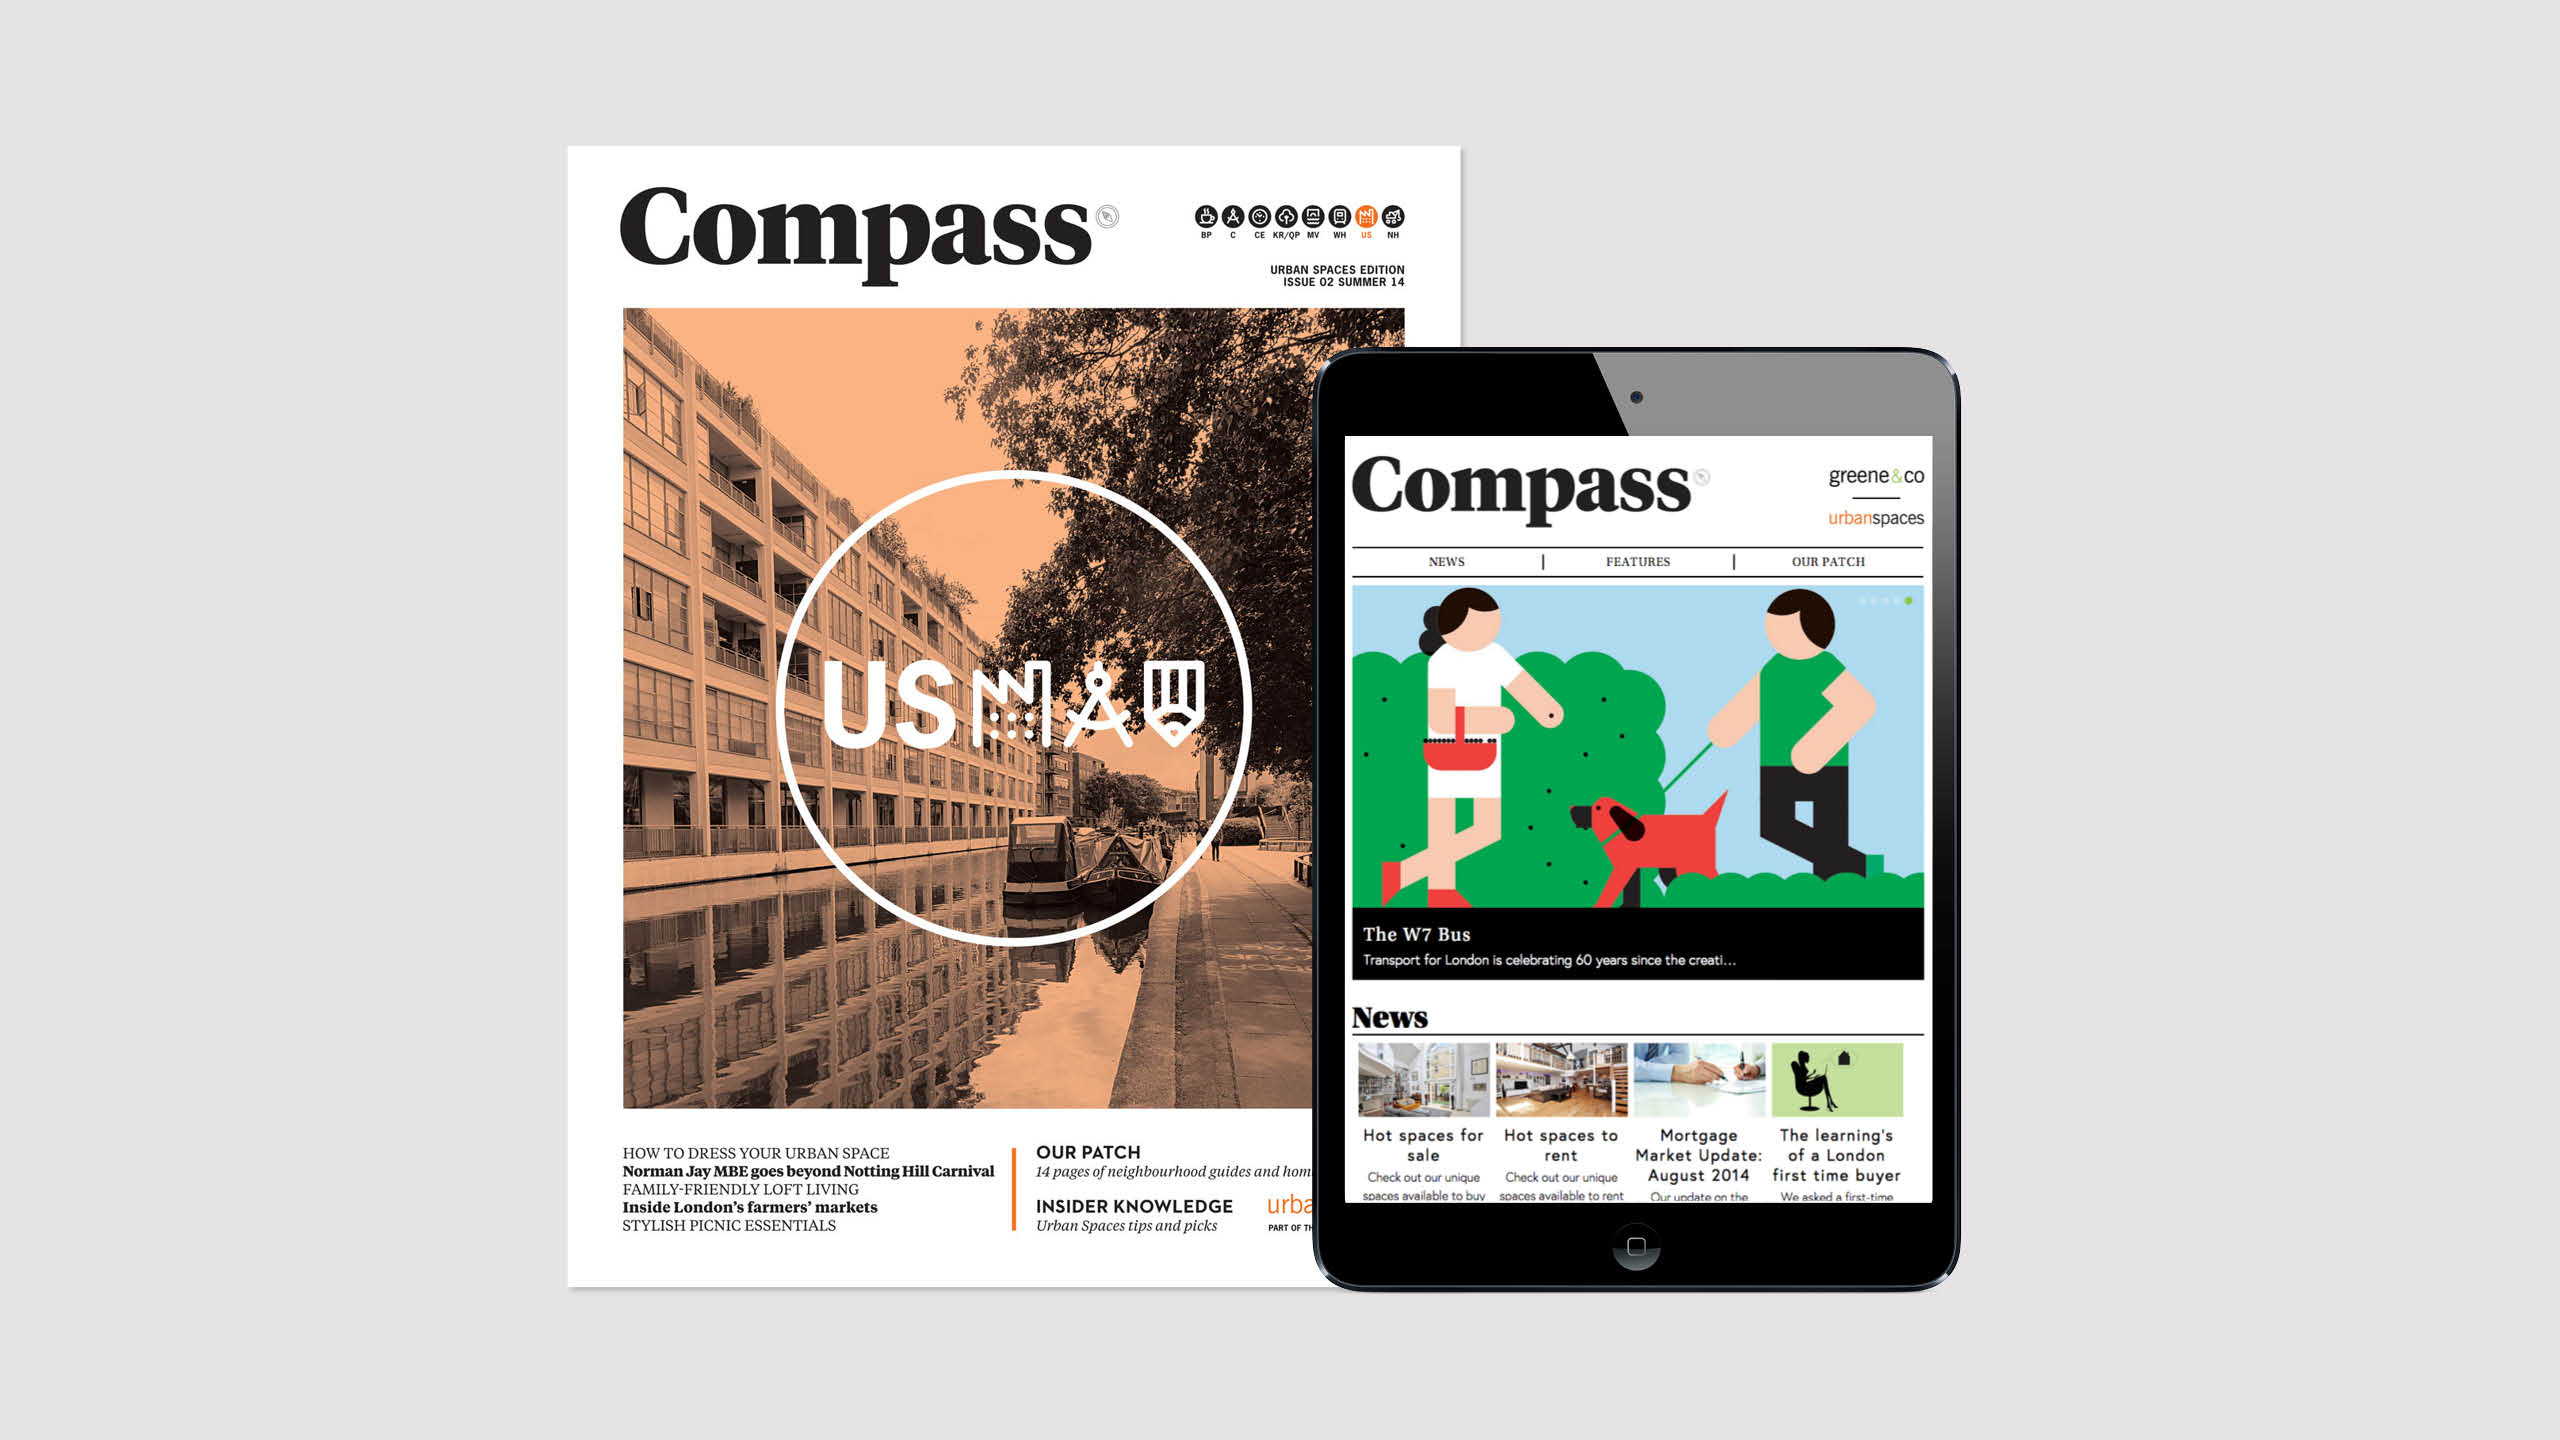 Compass magazine issue 2 summer 14